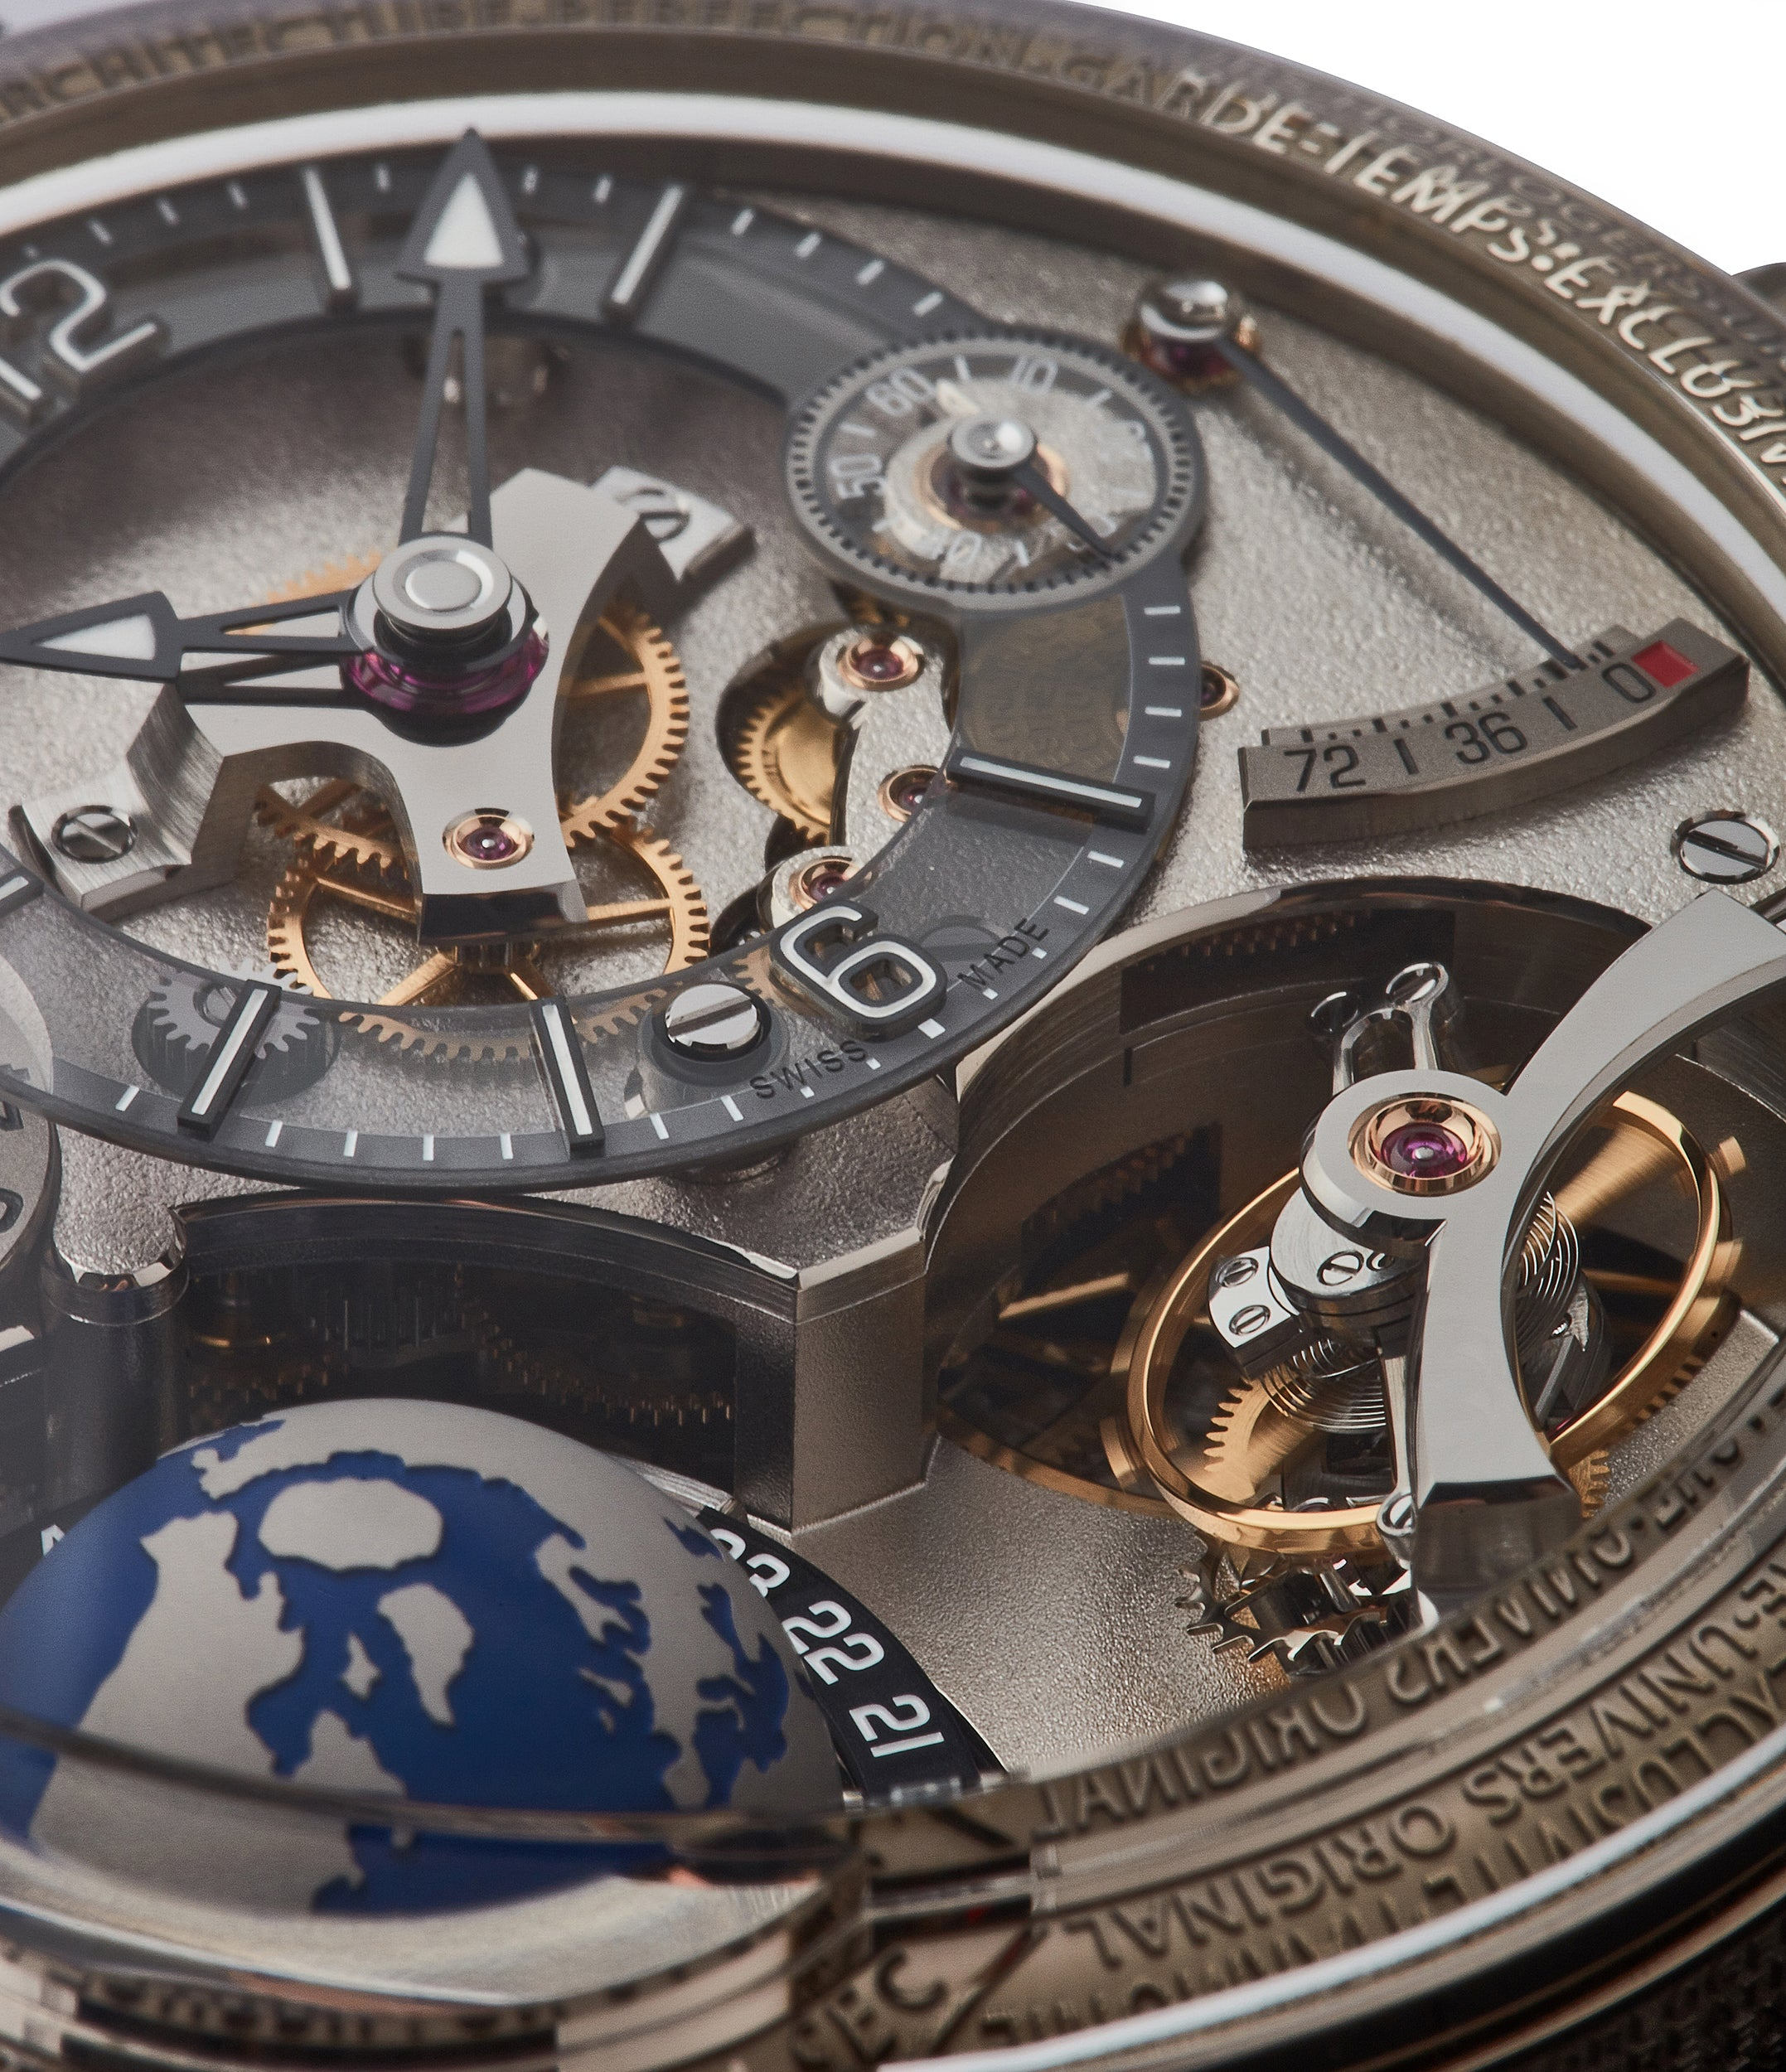 GMT Earth in white gold by Greubel Forsey limited edition rare tourbillon